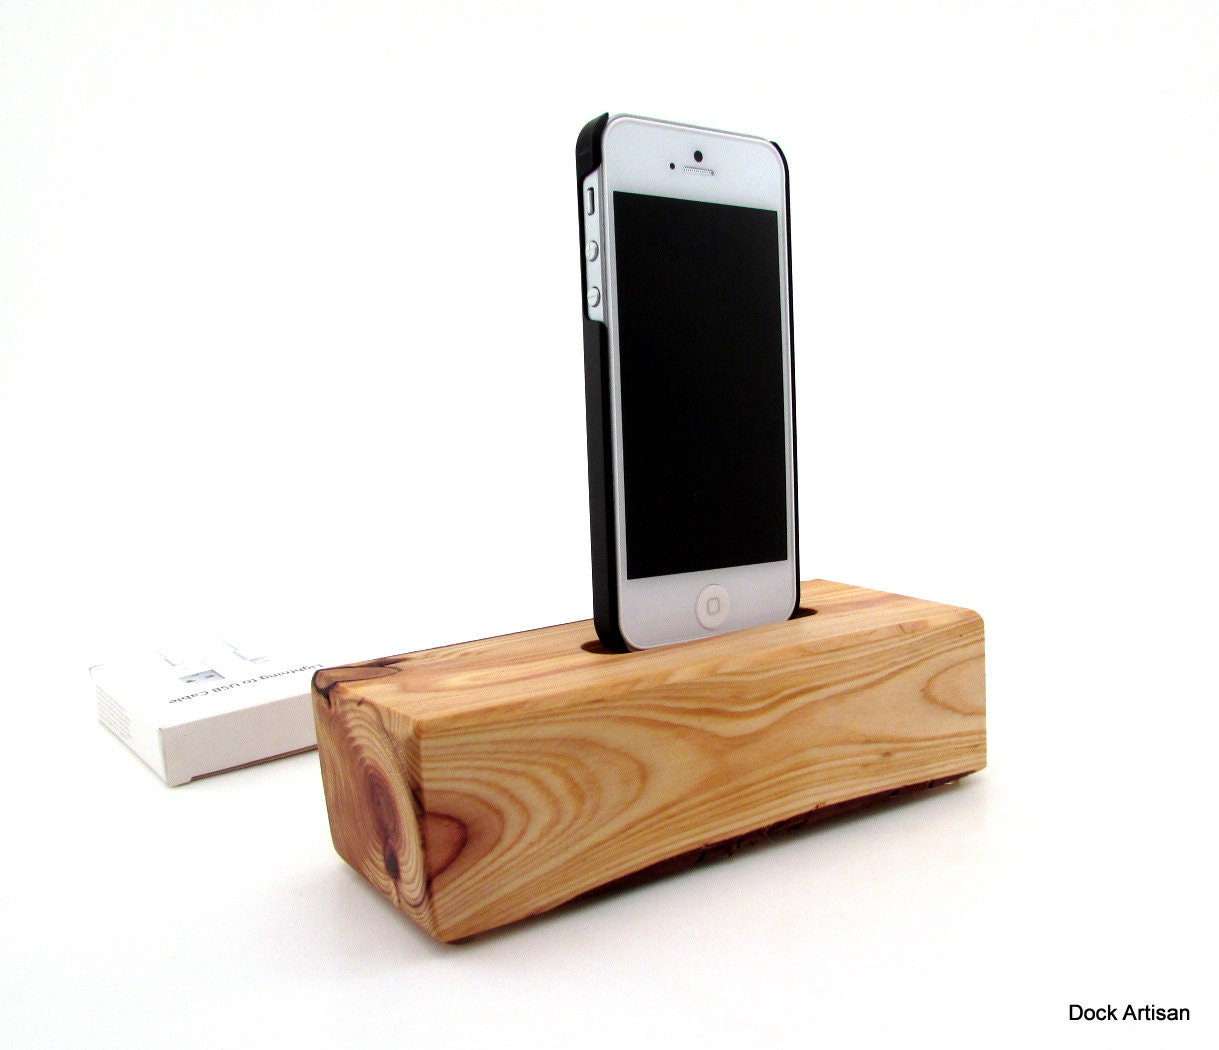 modern red wood iphone 5 6 docking station by dock artisan. Black Bedroom Furniture Sets. Home Design Ideas